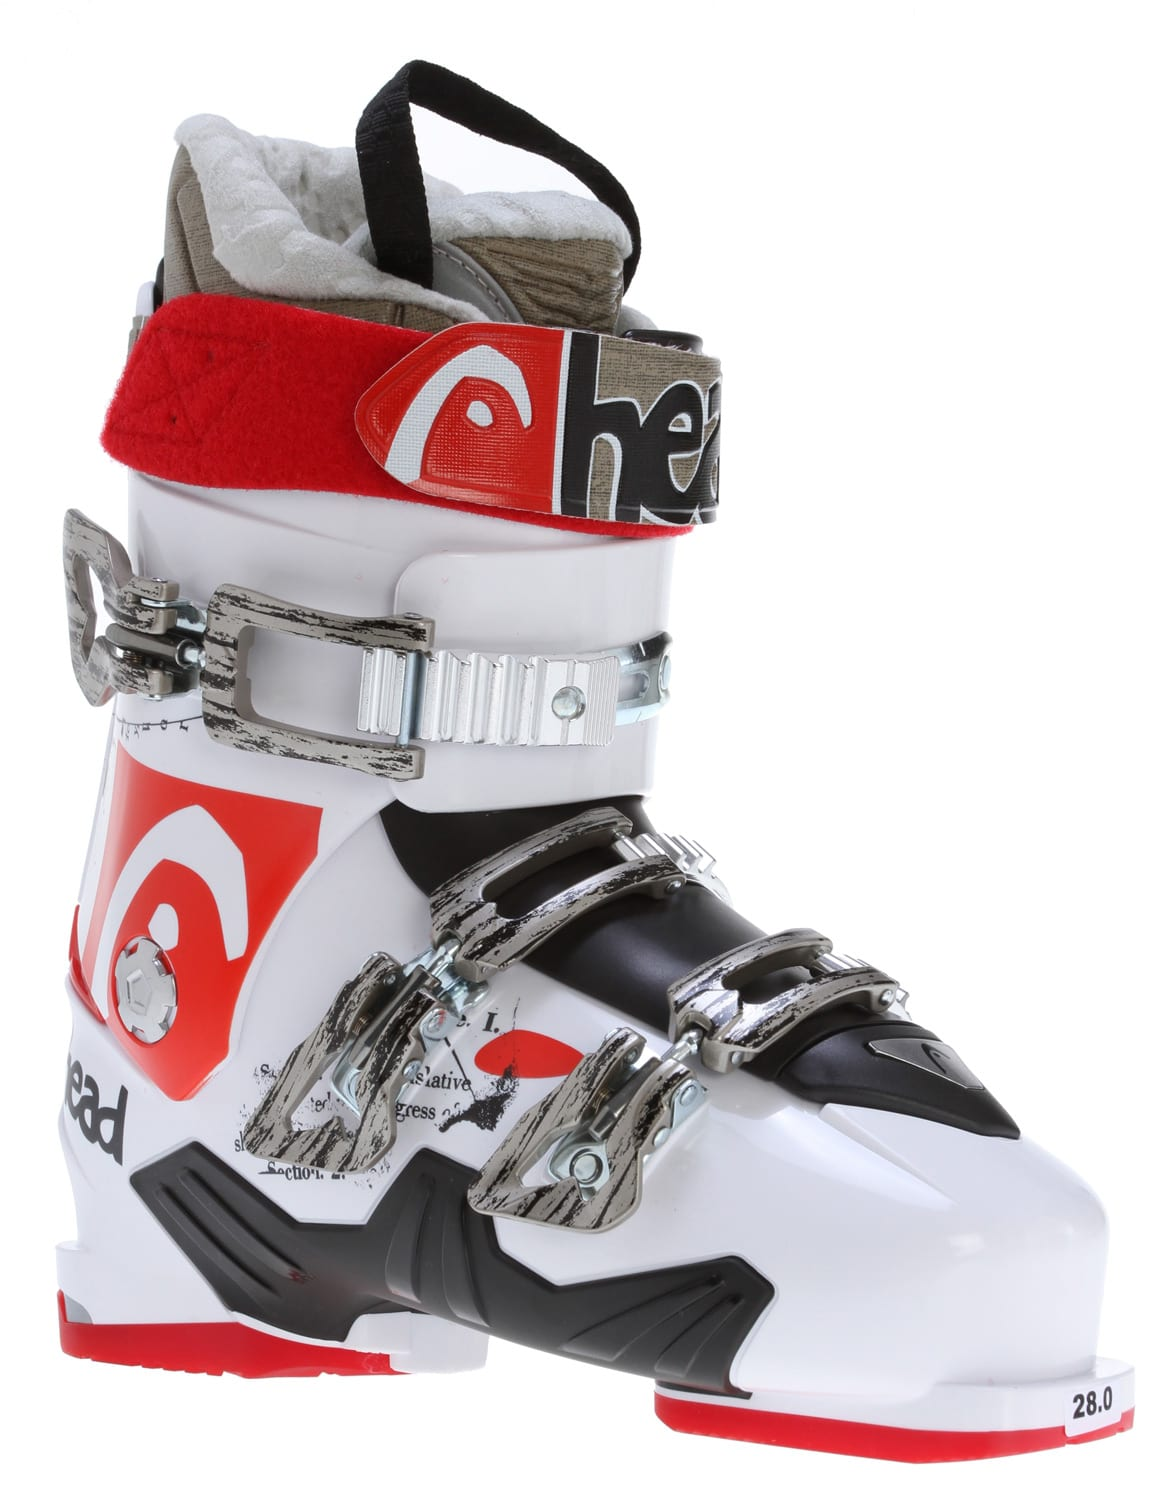 how to find my ski boot size